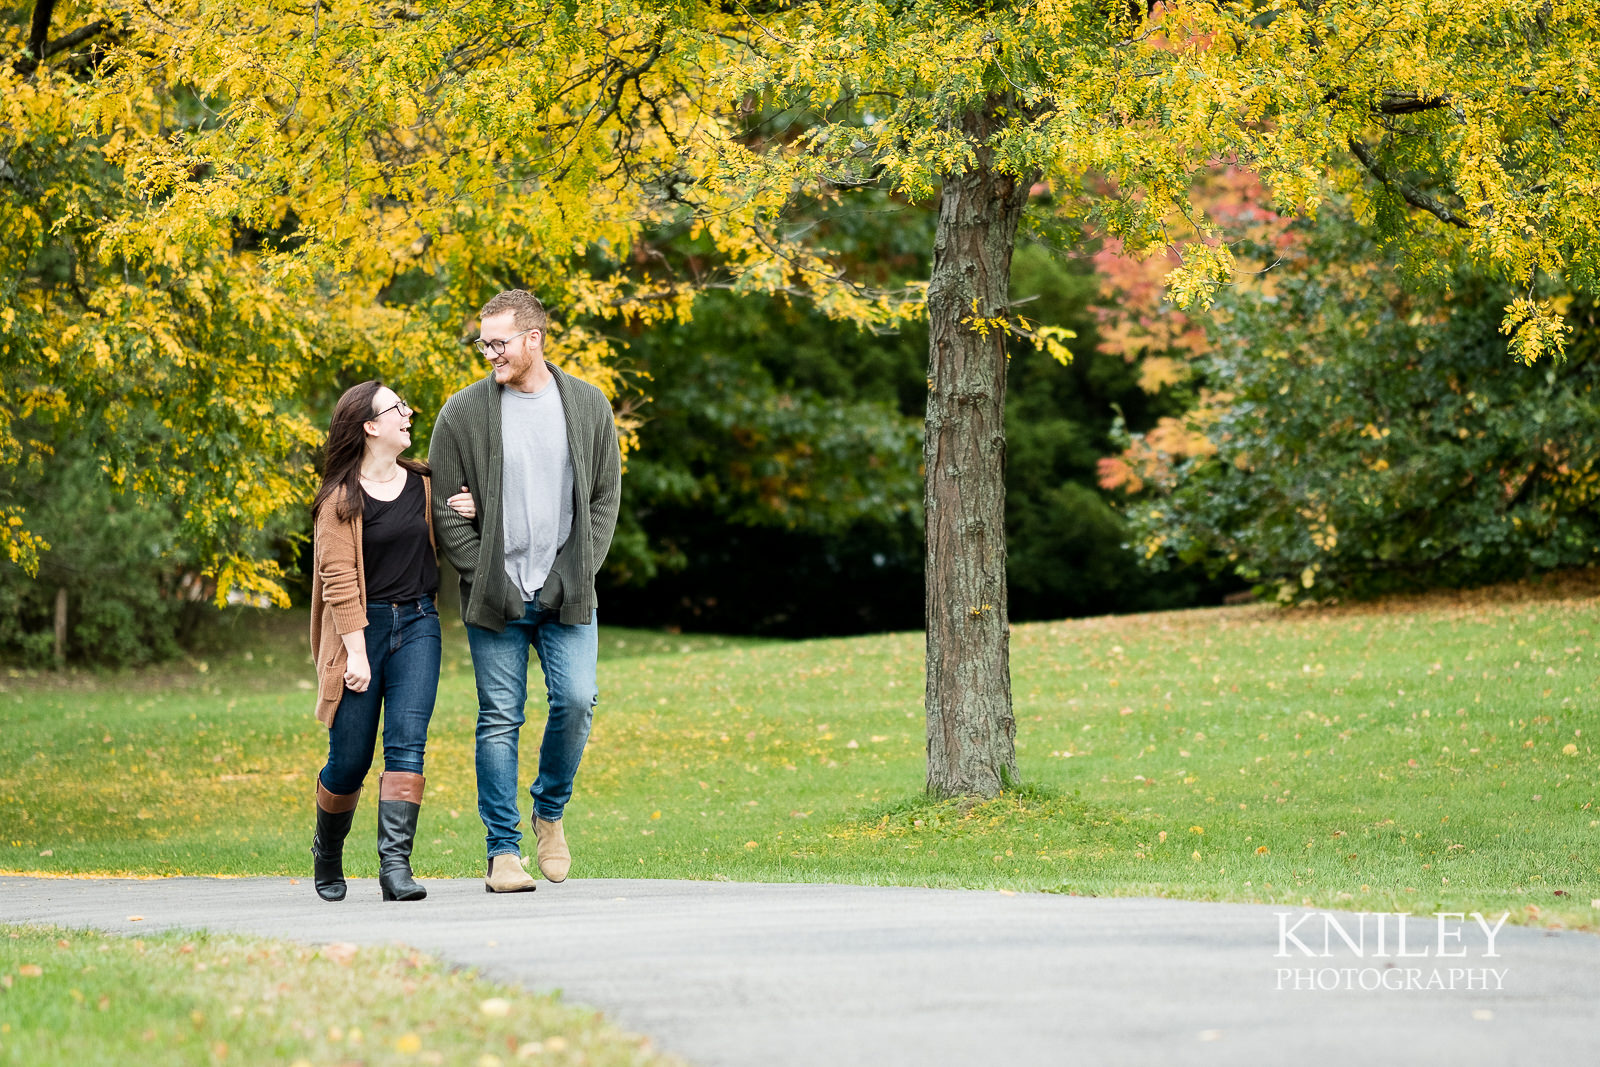 06 - Highland Park Fall Engagement Session - Rochester NY - XT2A1350.jpg